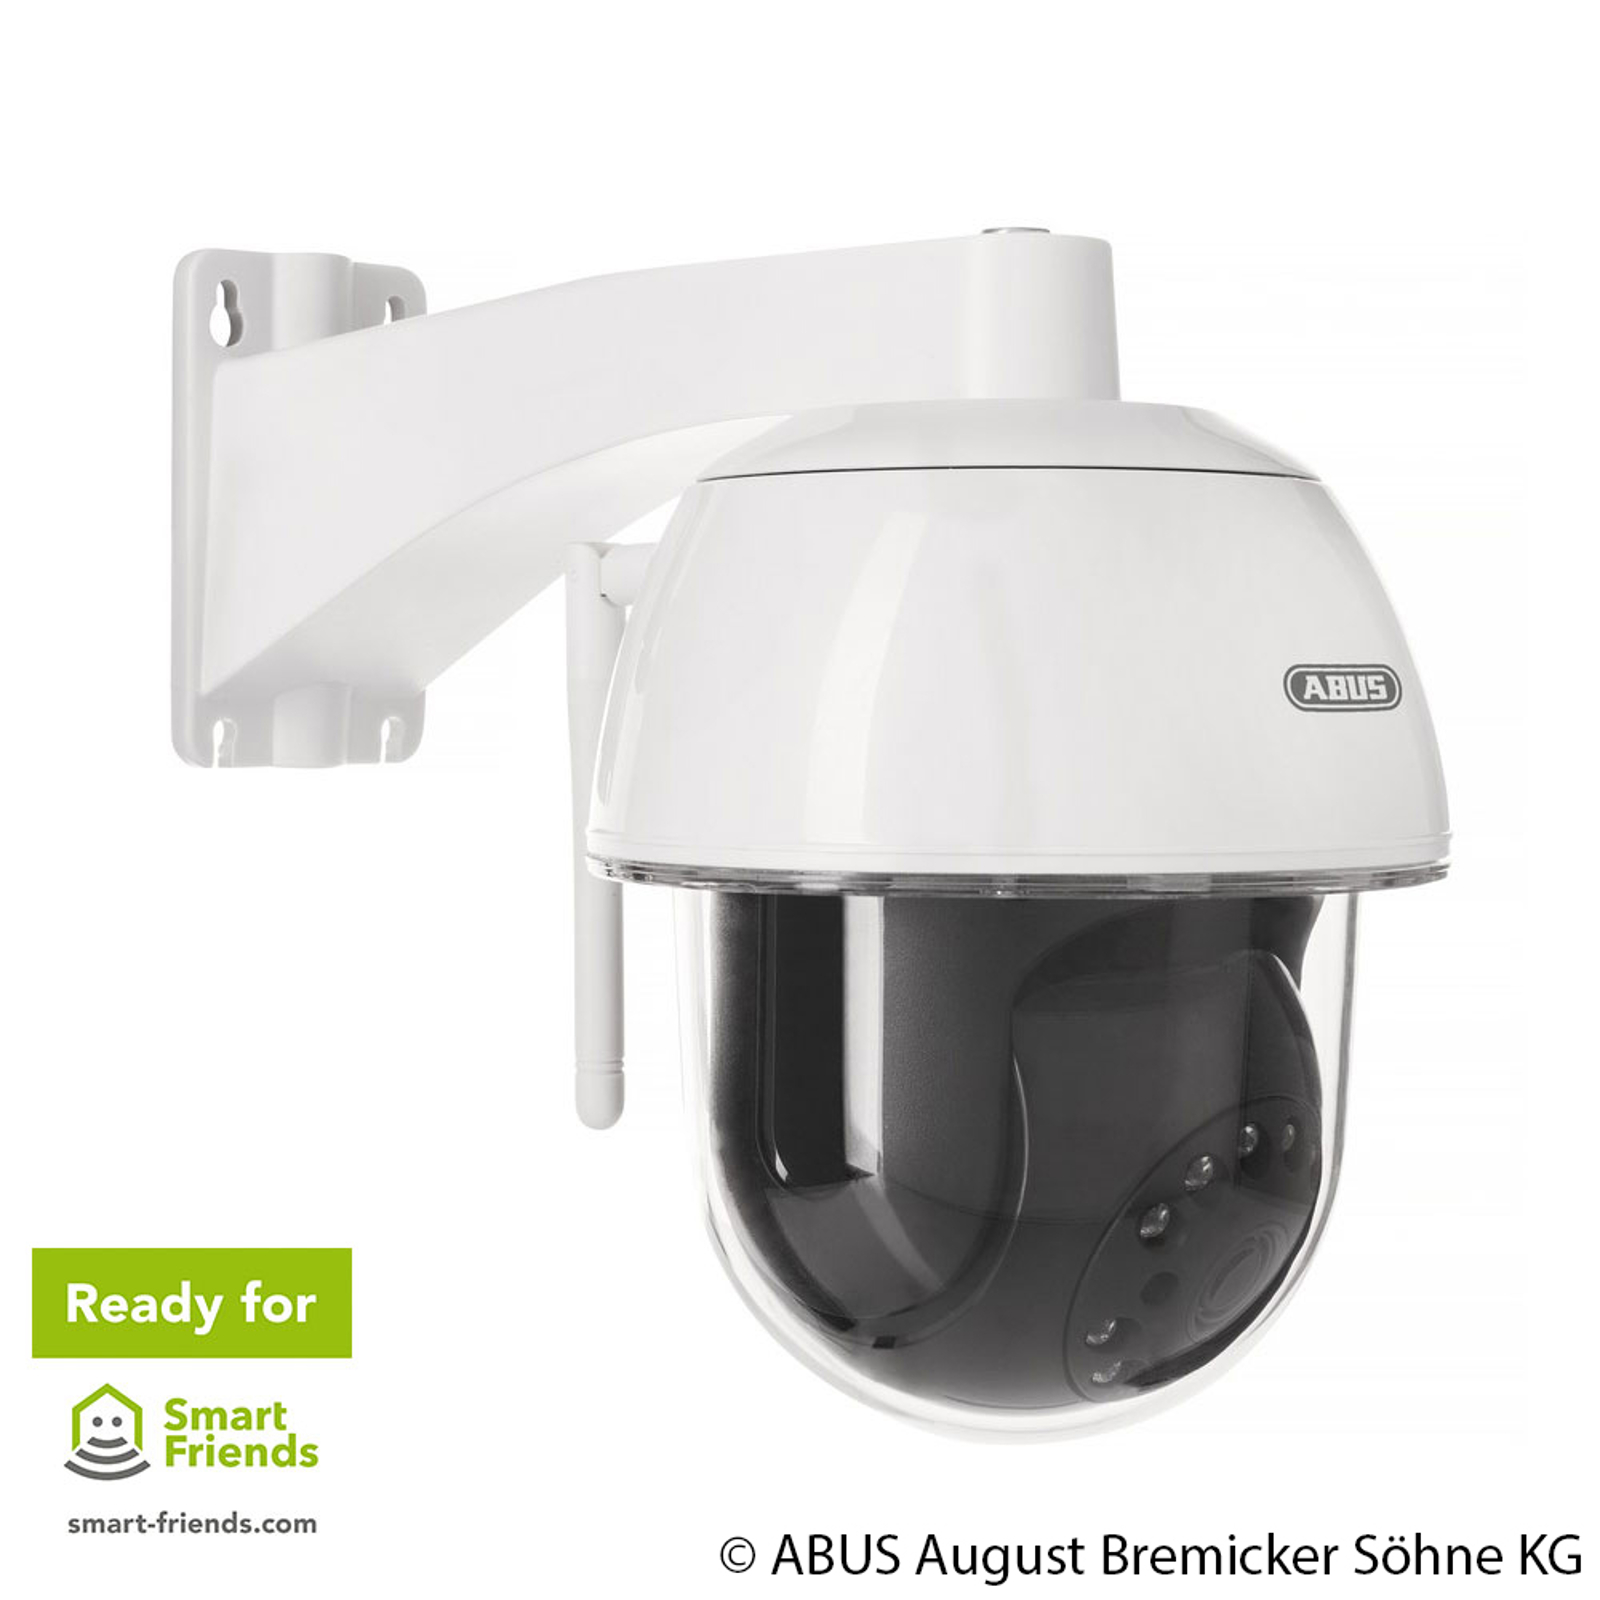 ABUS Smart Security WIFI caméra pivot/inclinable